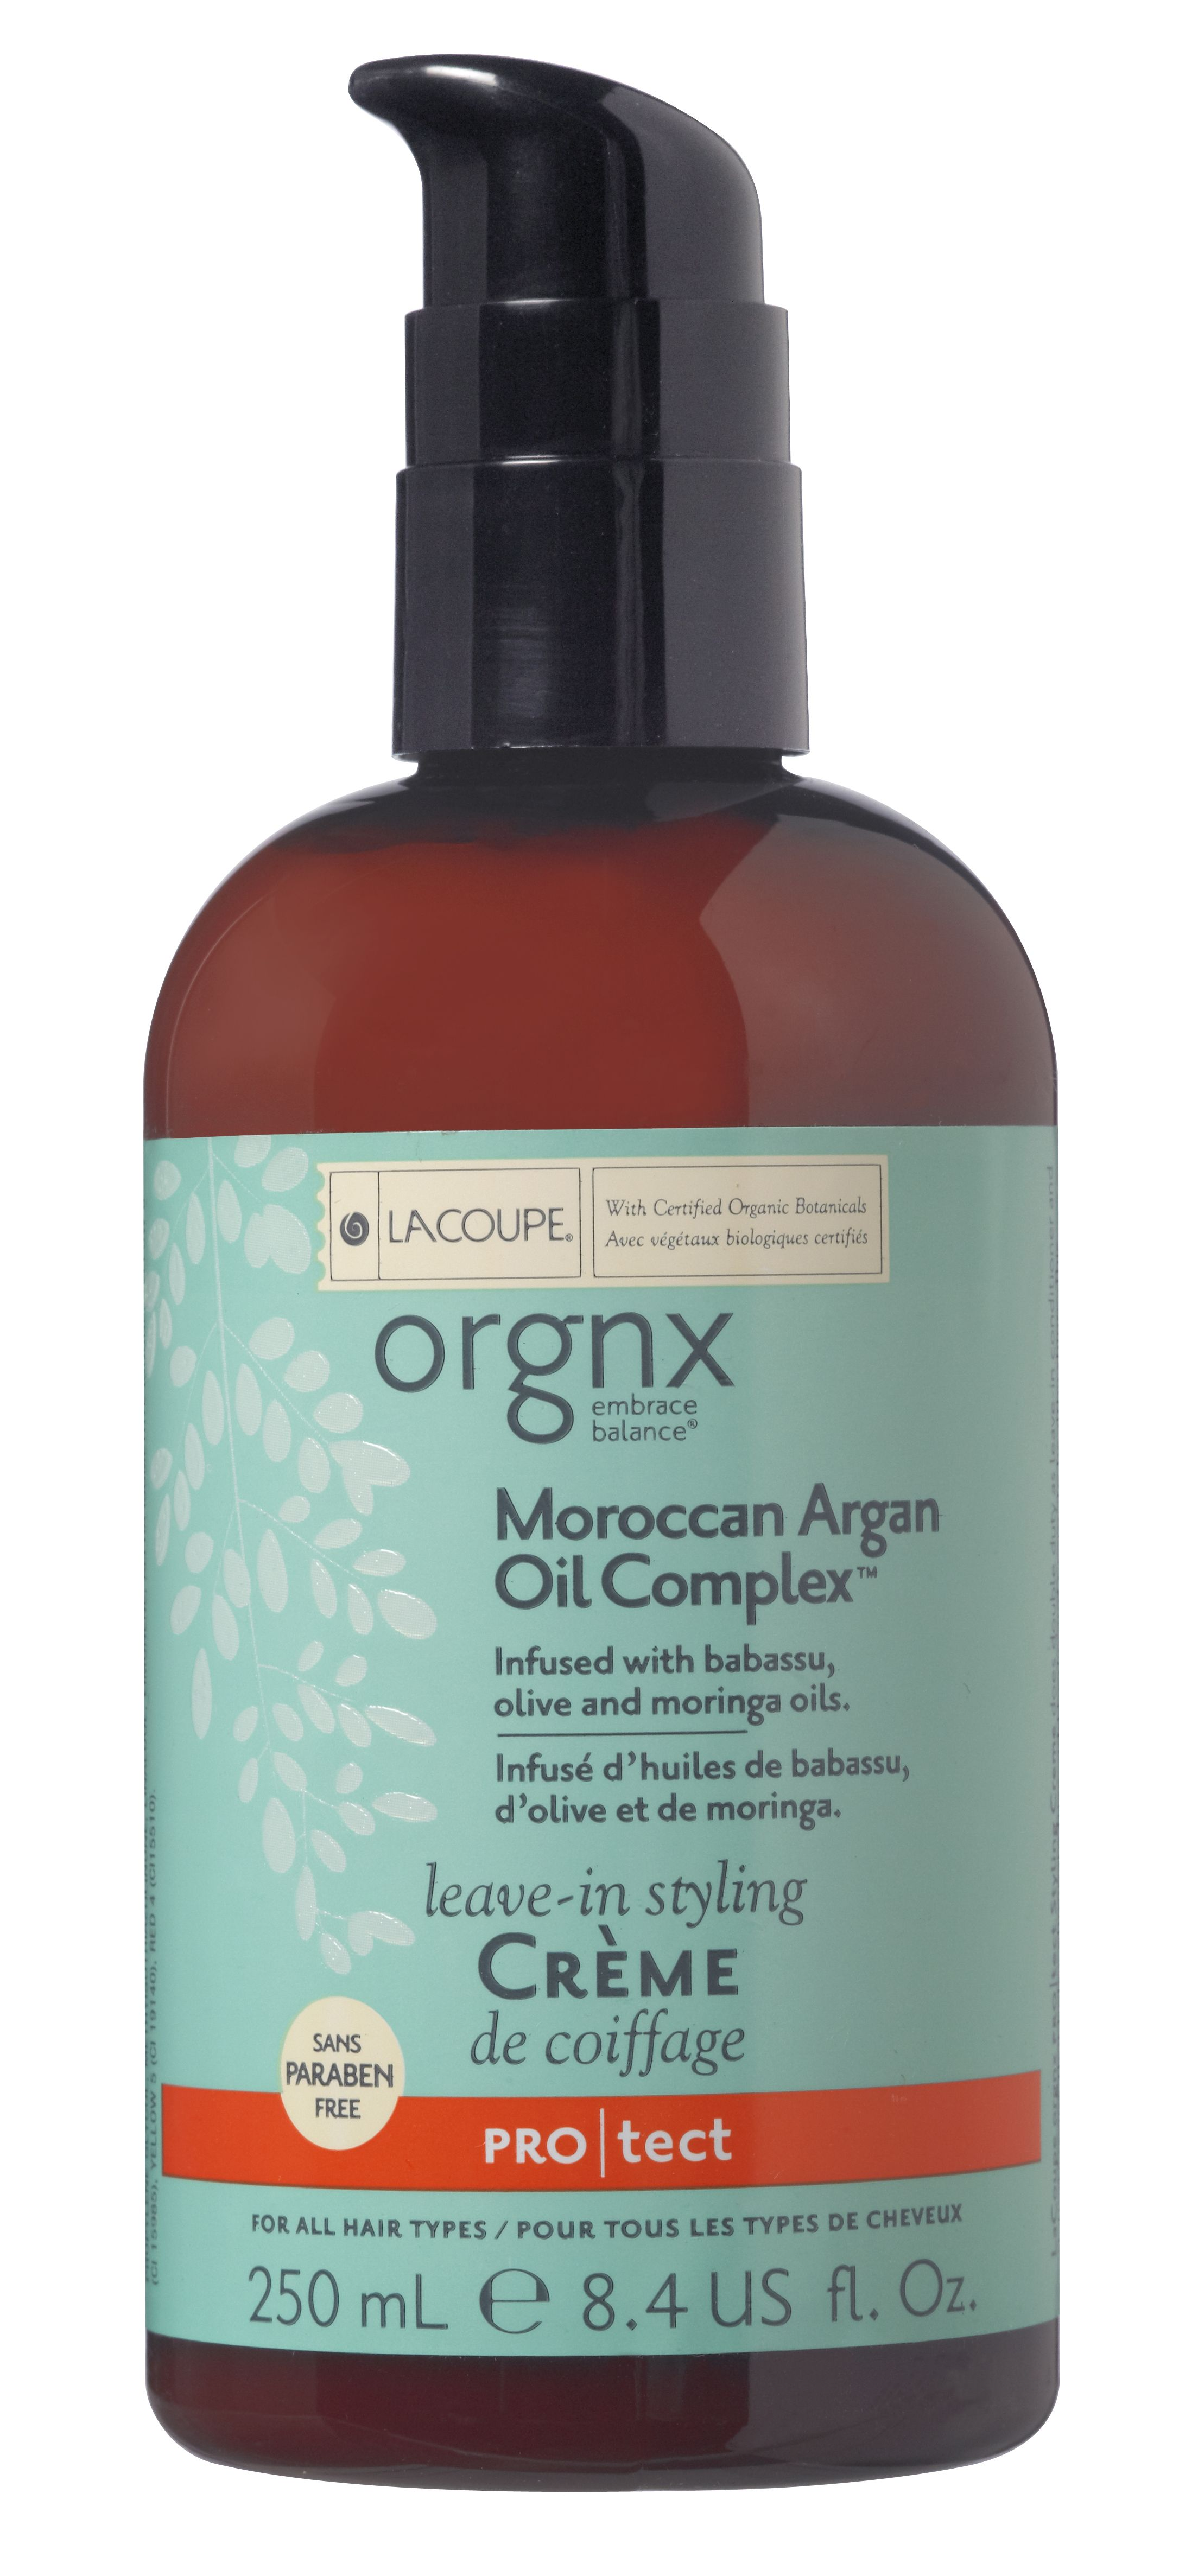 Lacoupe Orgnx Moroccan Argan Oil Complex System I Absolutely Love The Wet Brush Detangler Powder Blue Creme Perfect For Styling And Moisturising My Hair Smells Lovely Too